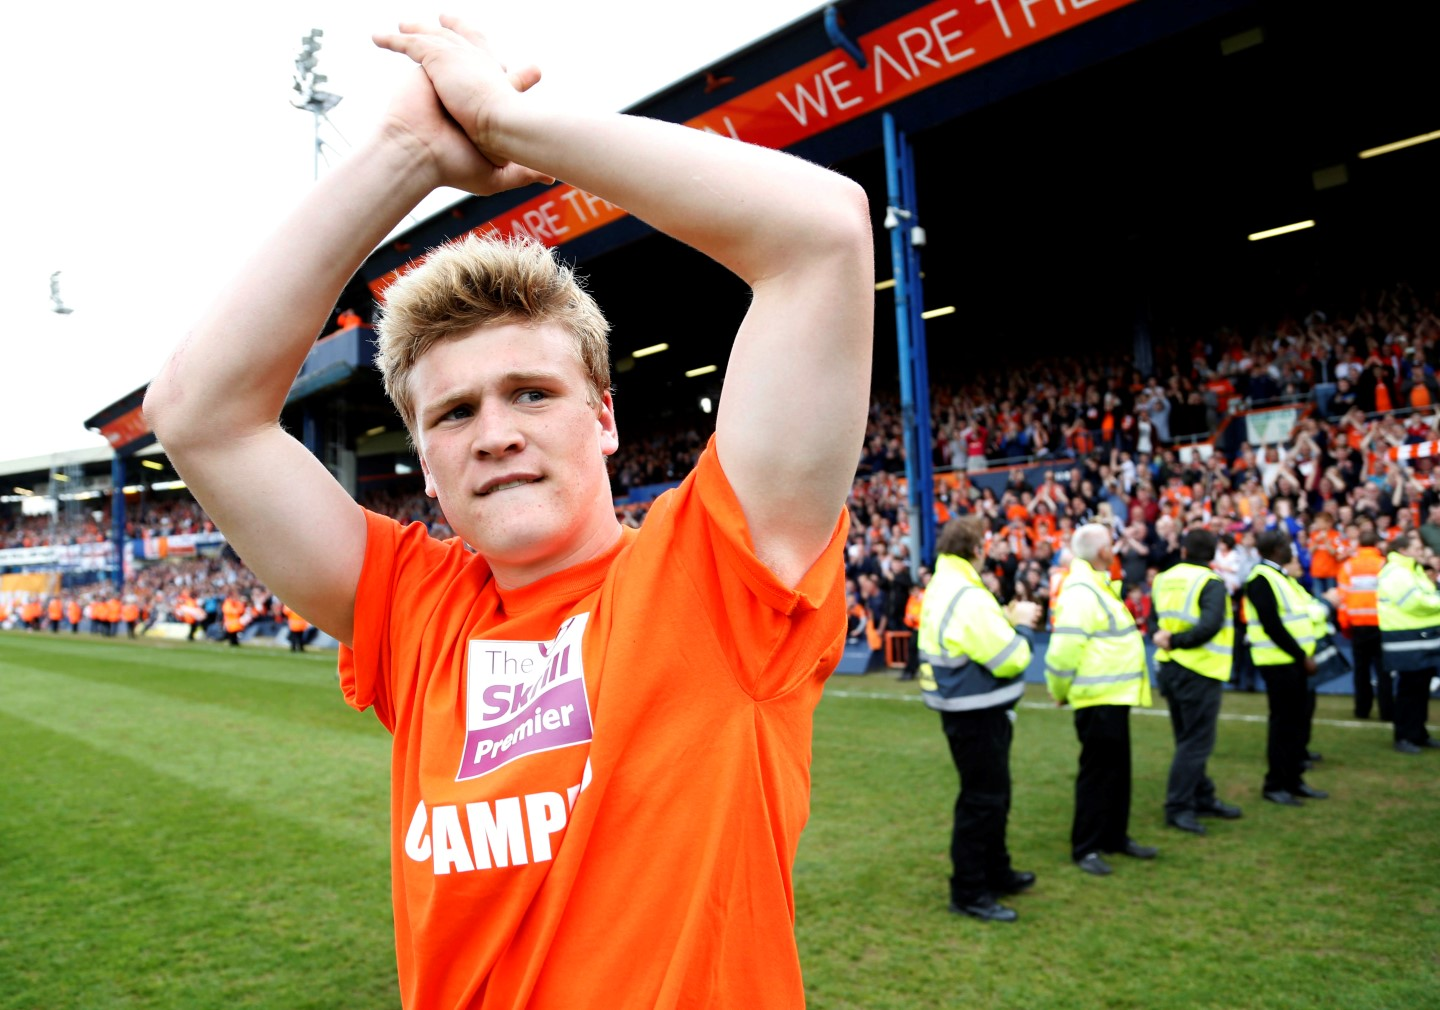 Cameron McGeehan walks out to collect his Conference title winner's medal at Kenilworth Road in 2014